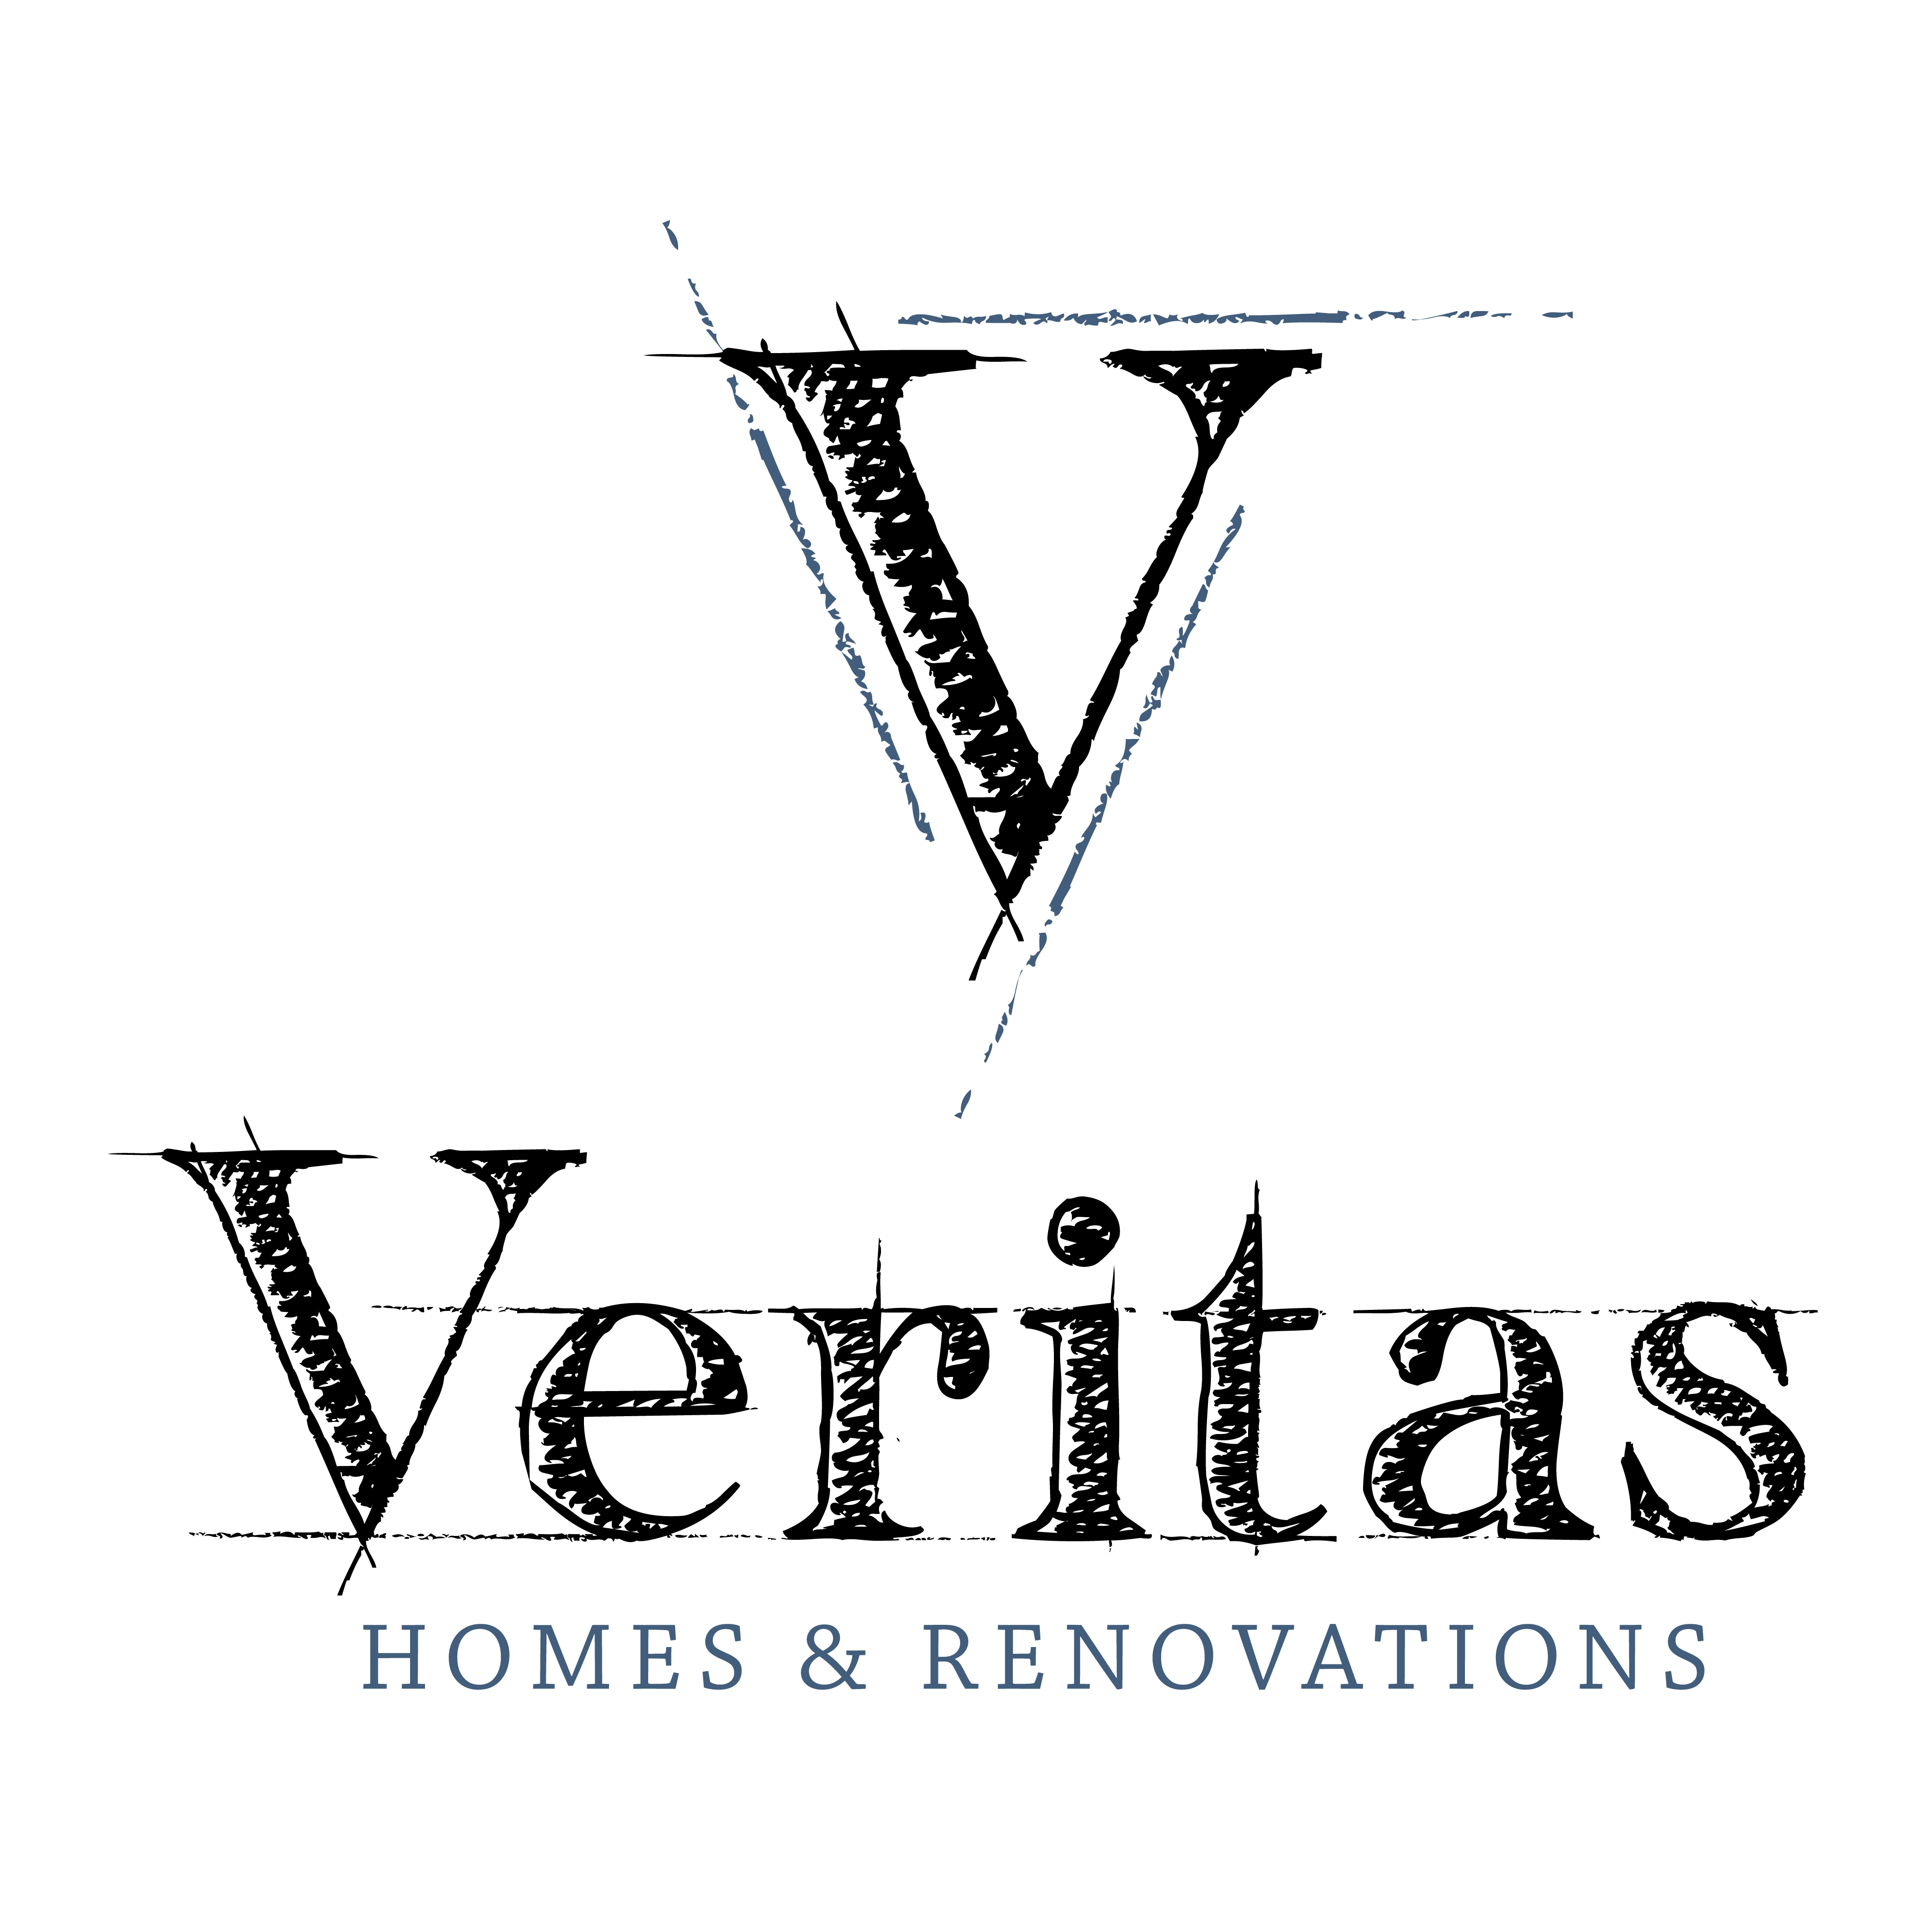 Create distinctive logo for renovation company